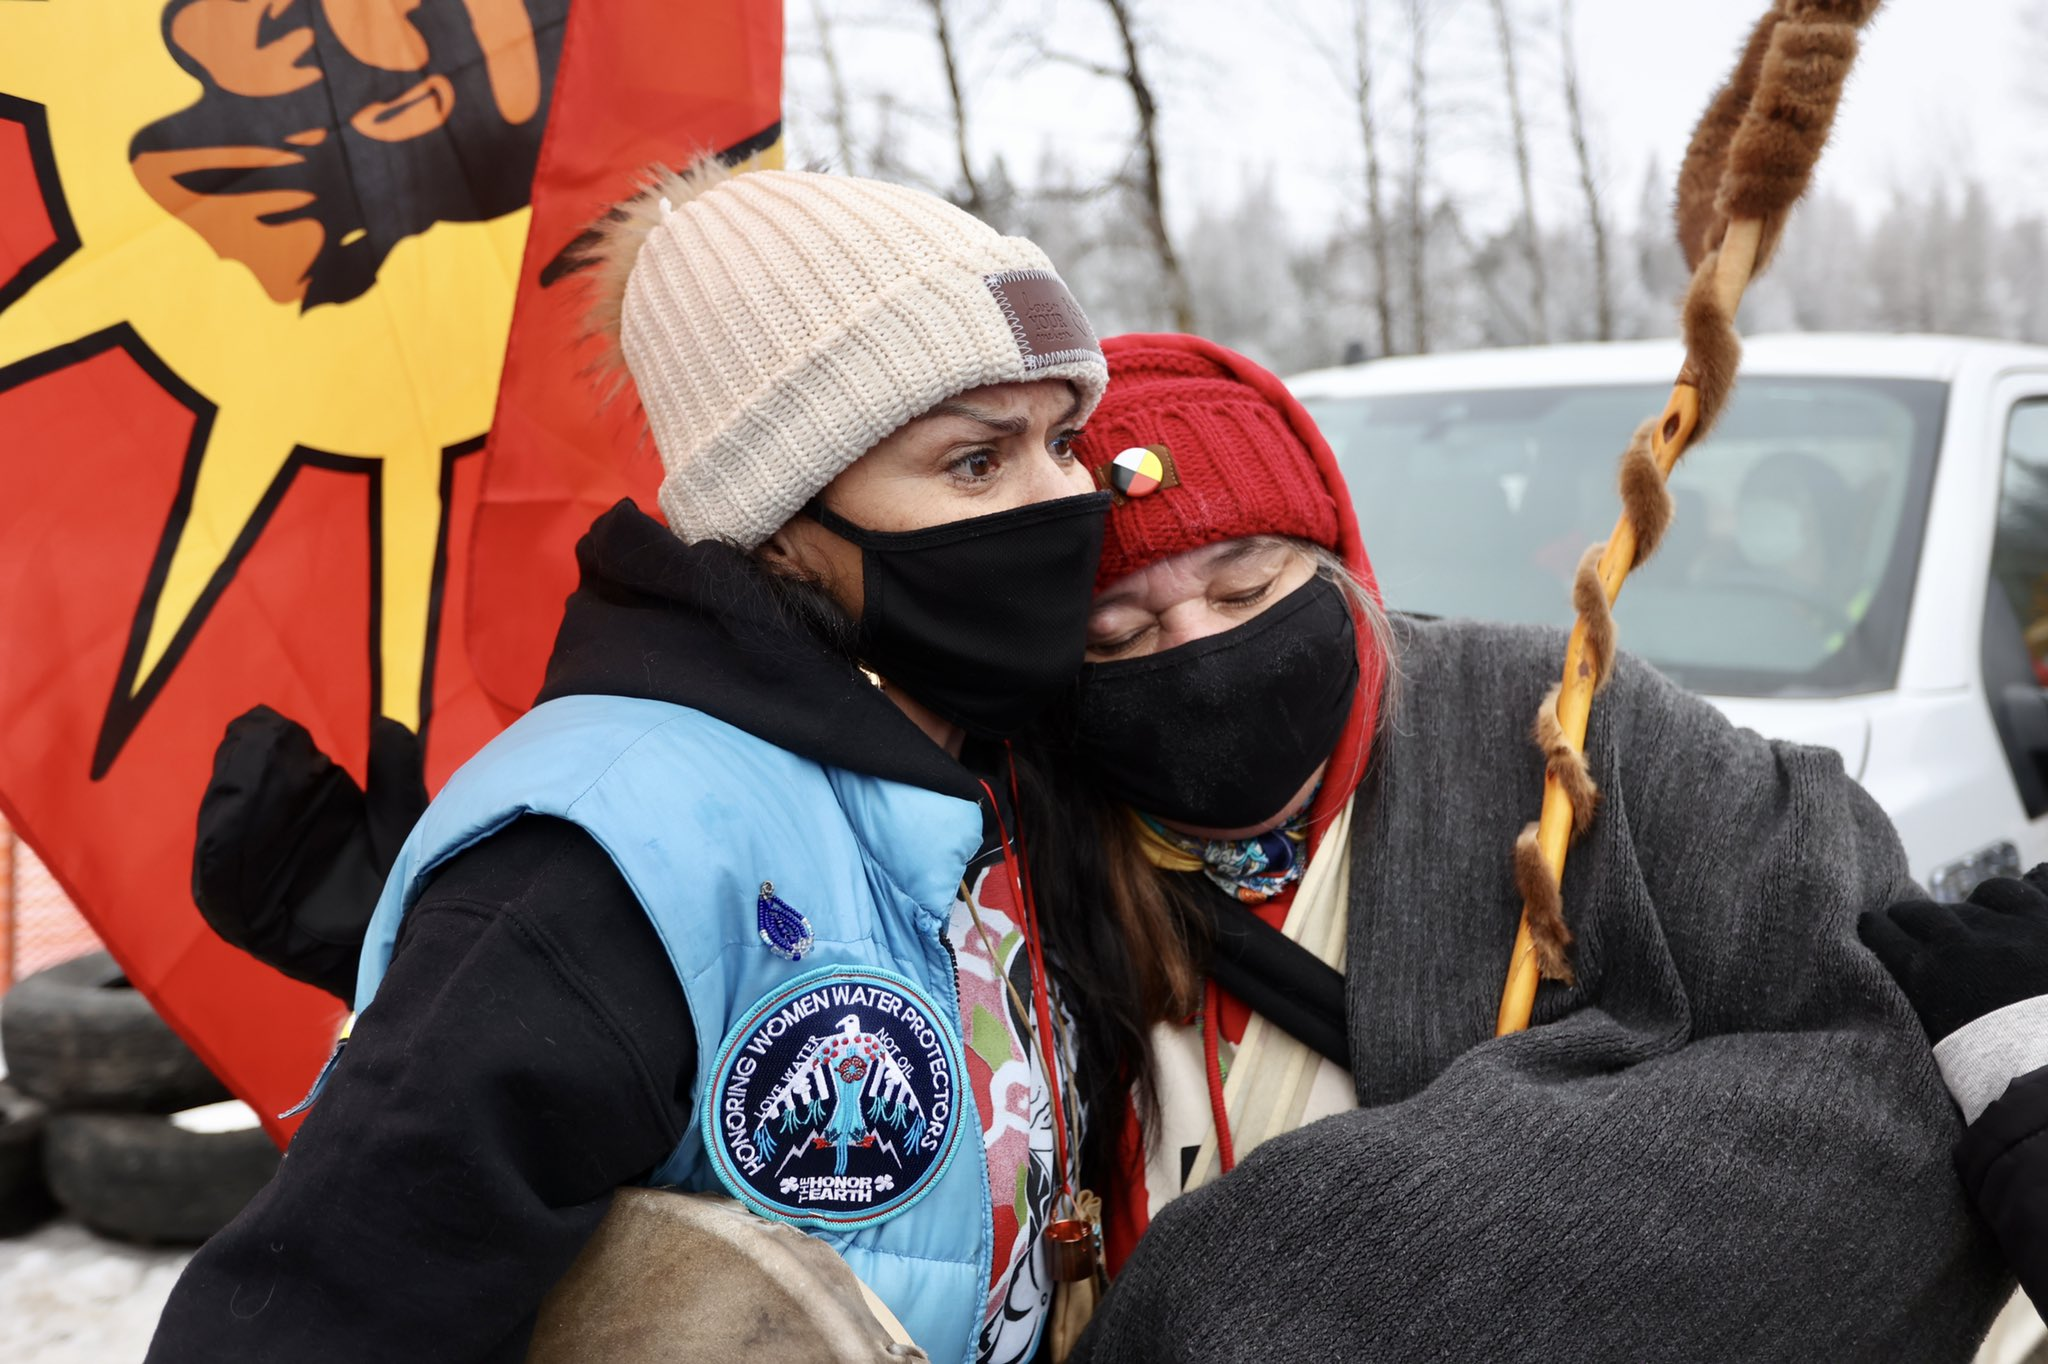 Police Assault Indigenous Rights Activists at Protest to Stop Minnesota Line 3 Pipeline